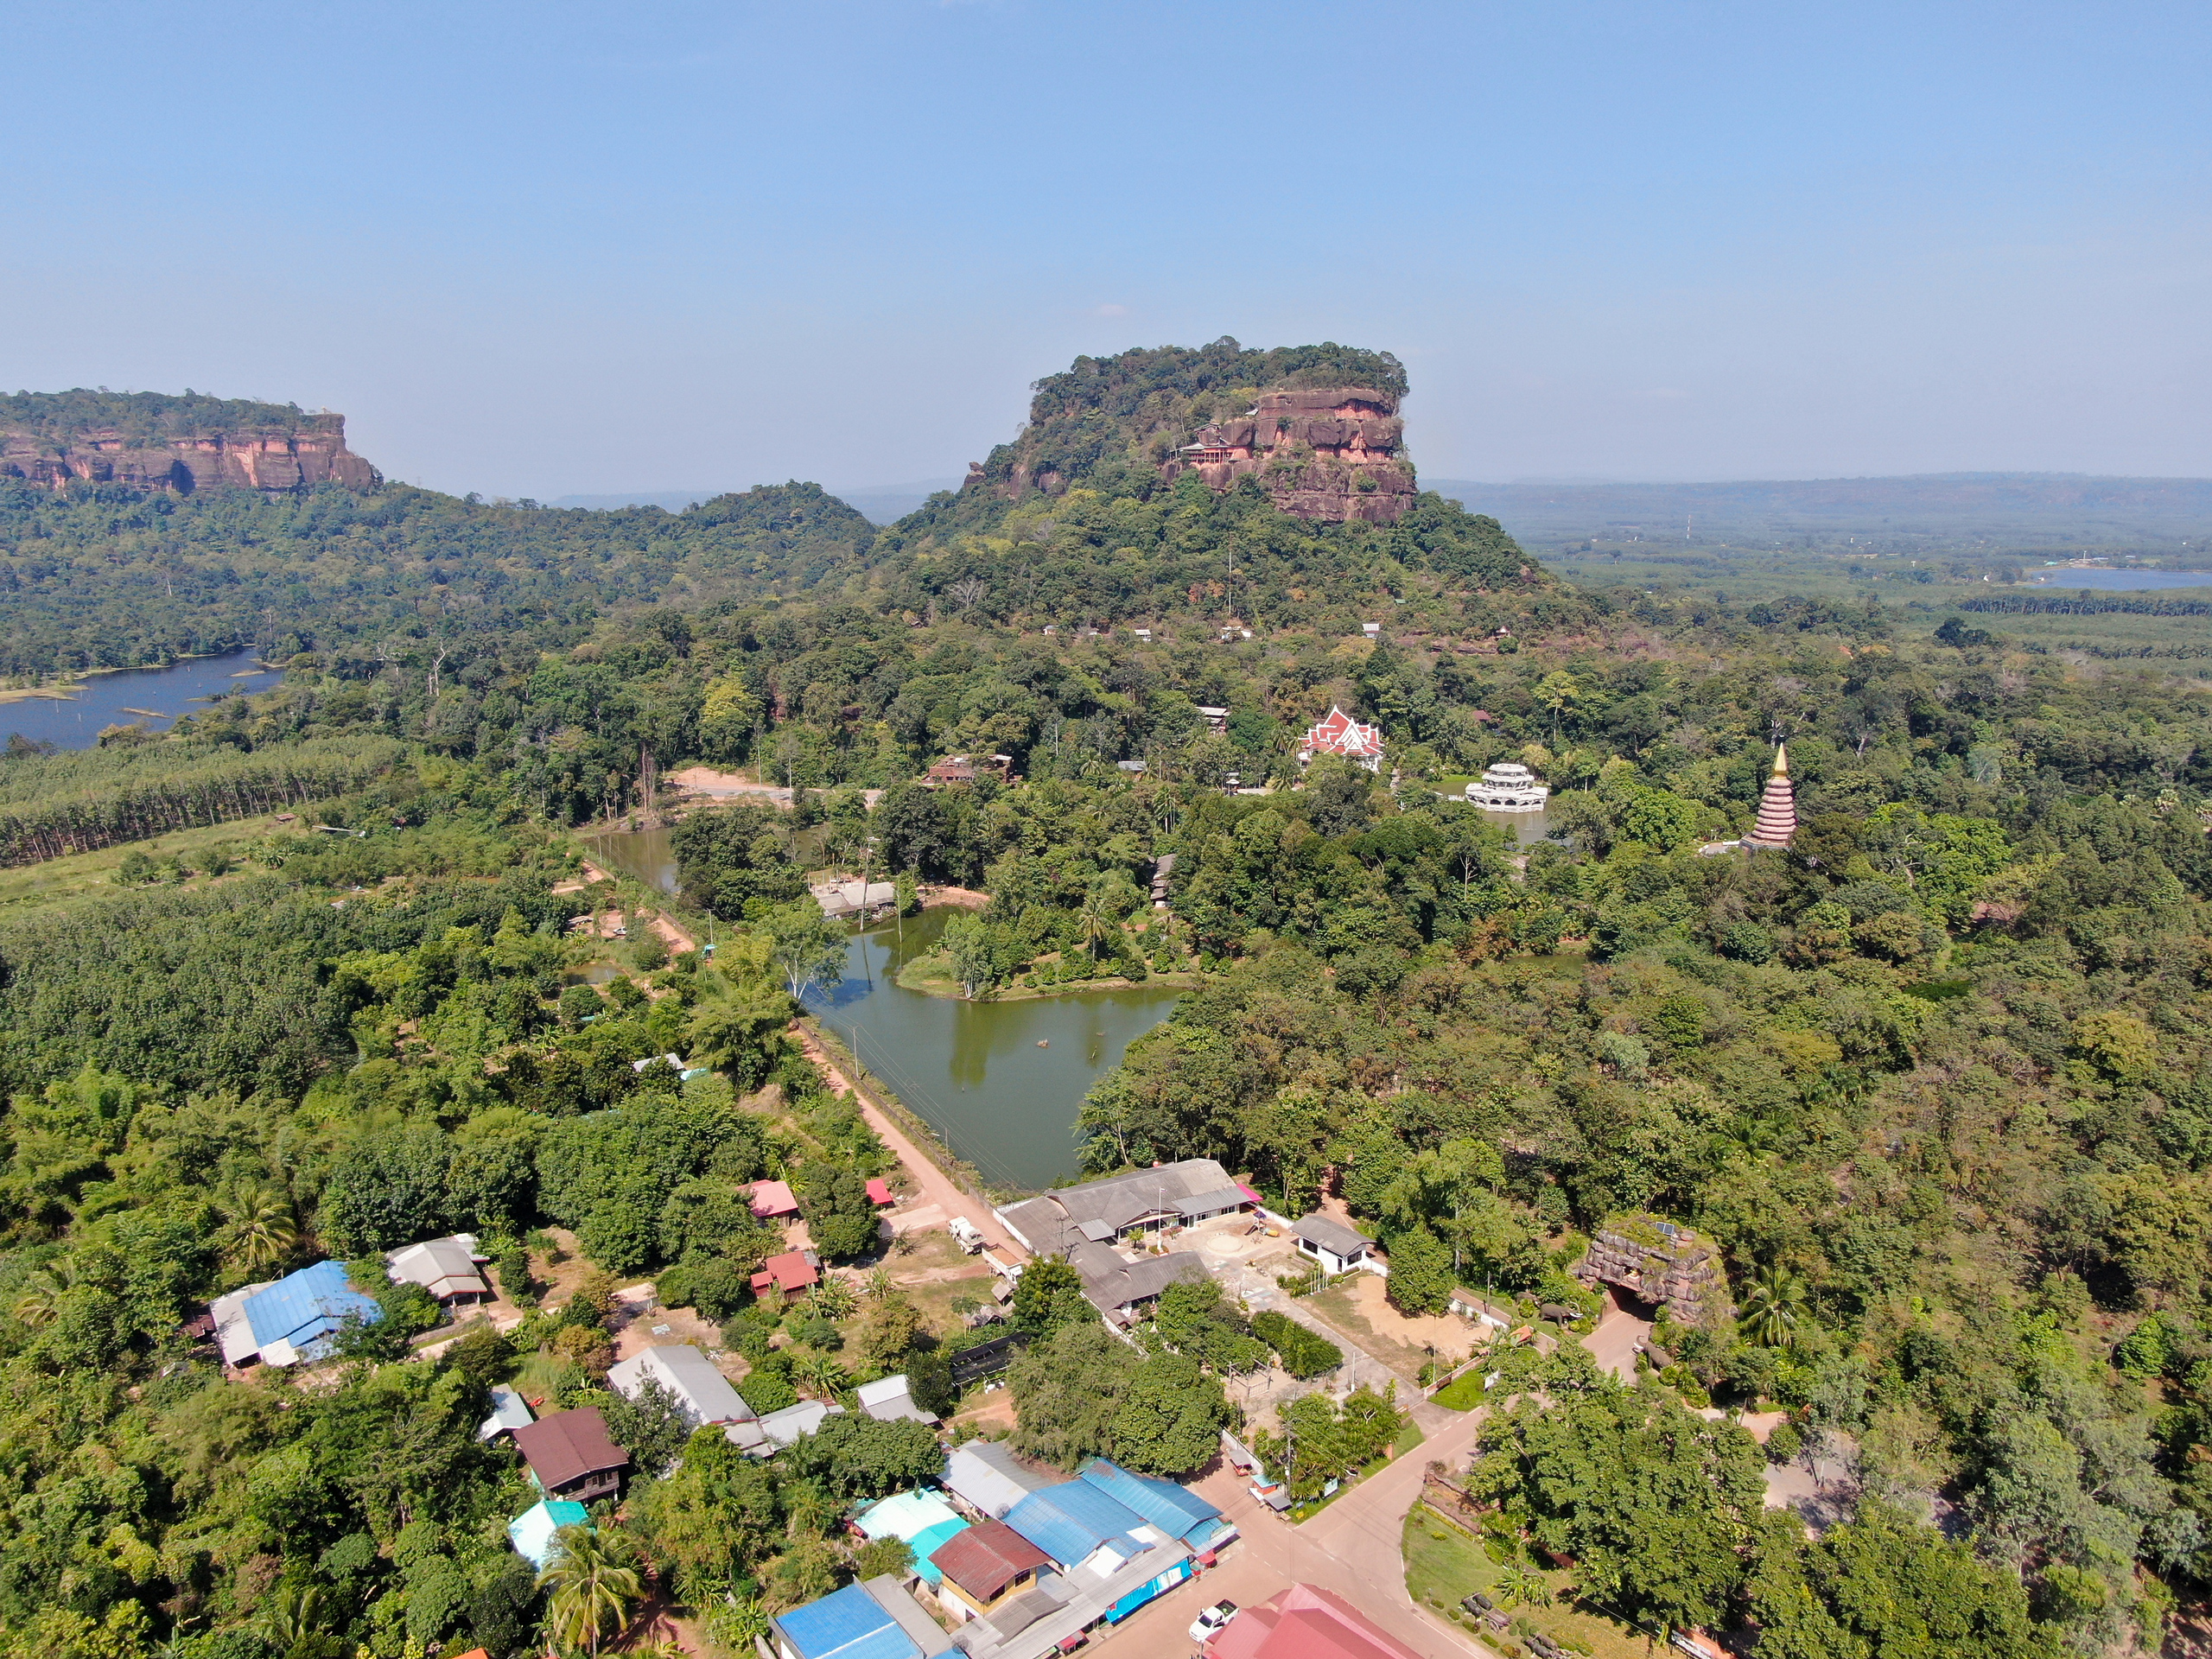 Travel guide to Bueng Kan